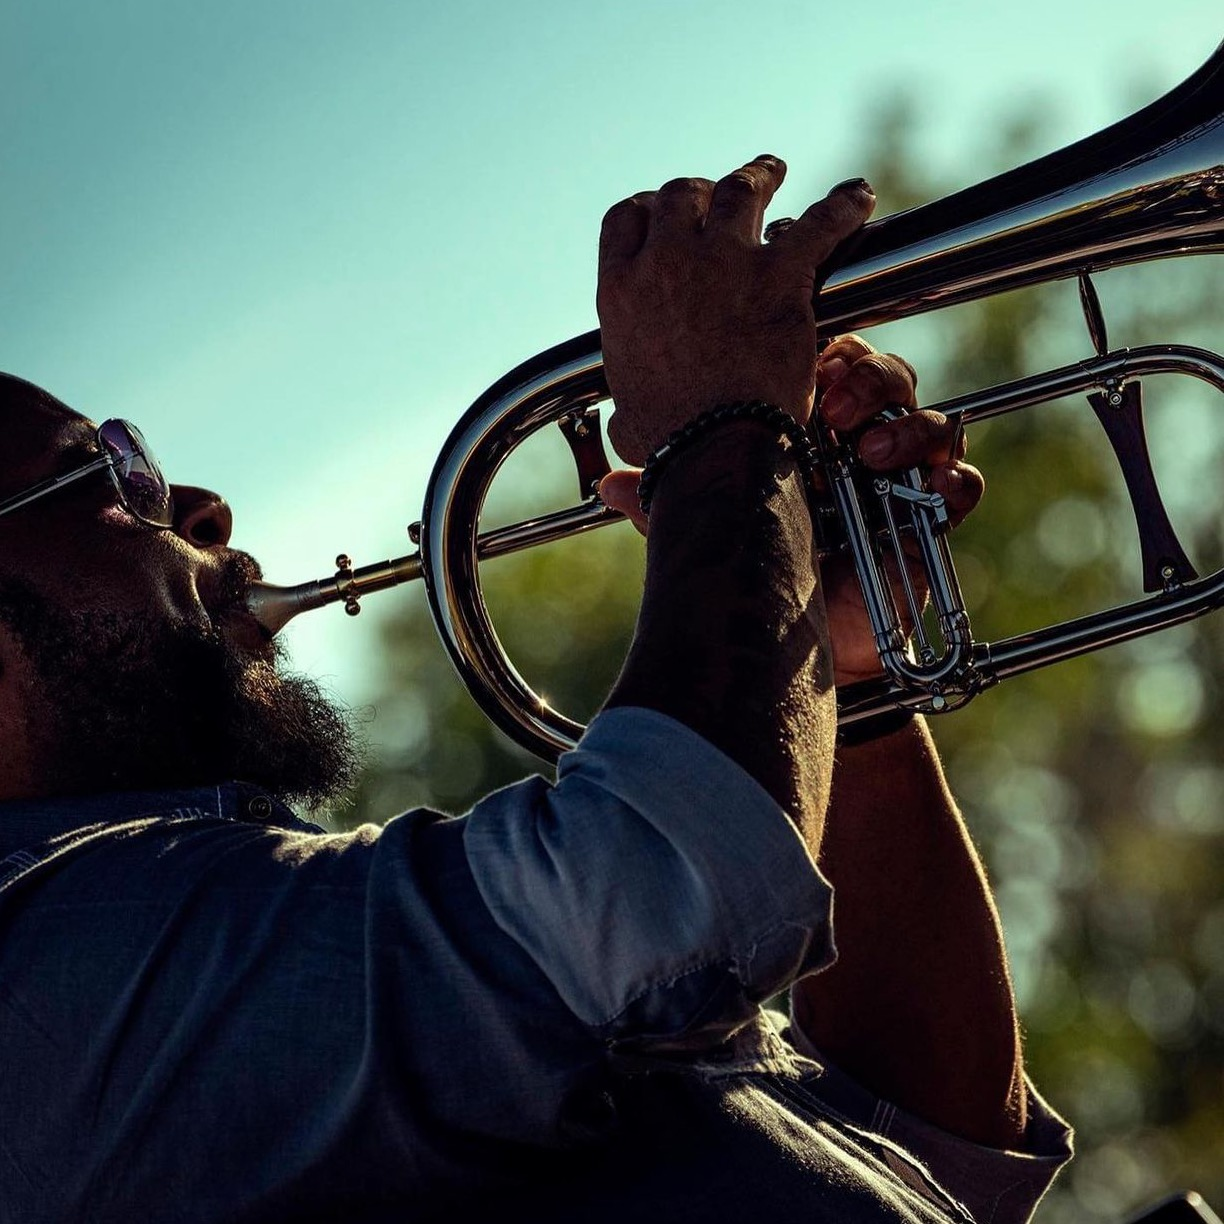 guy playing horn